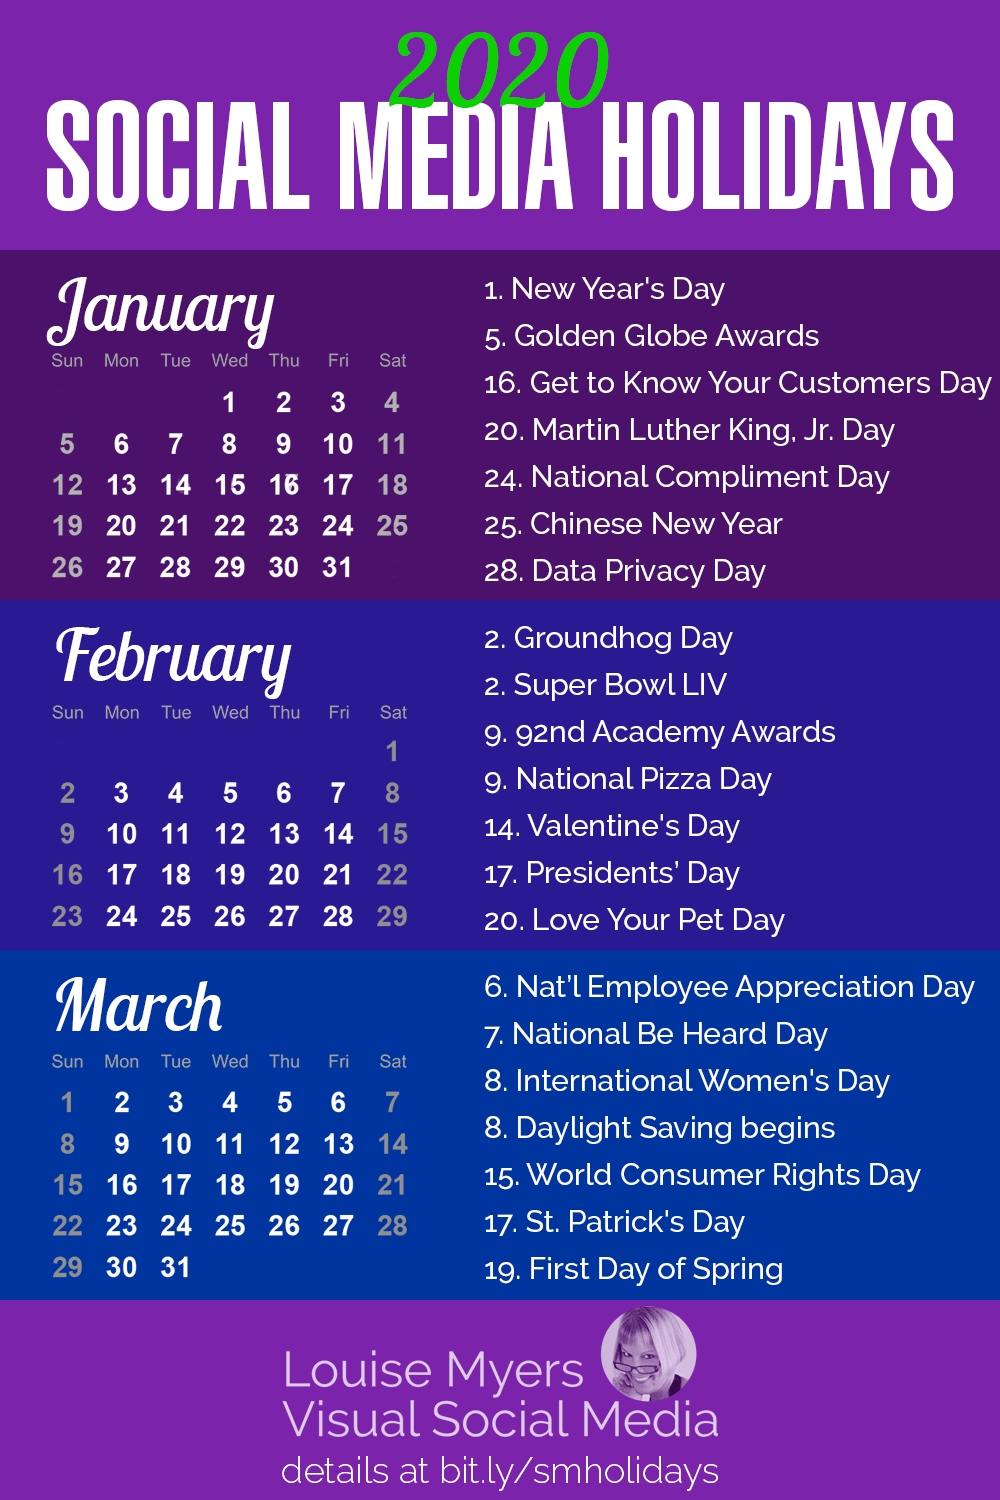 84 Social Media Holidays You Need In 2020: Indispensable! regarding Yearly Calendar Of Special Days 2020